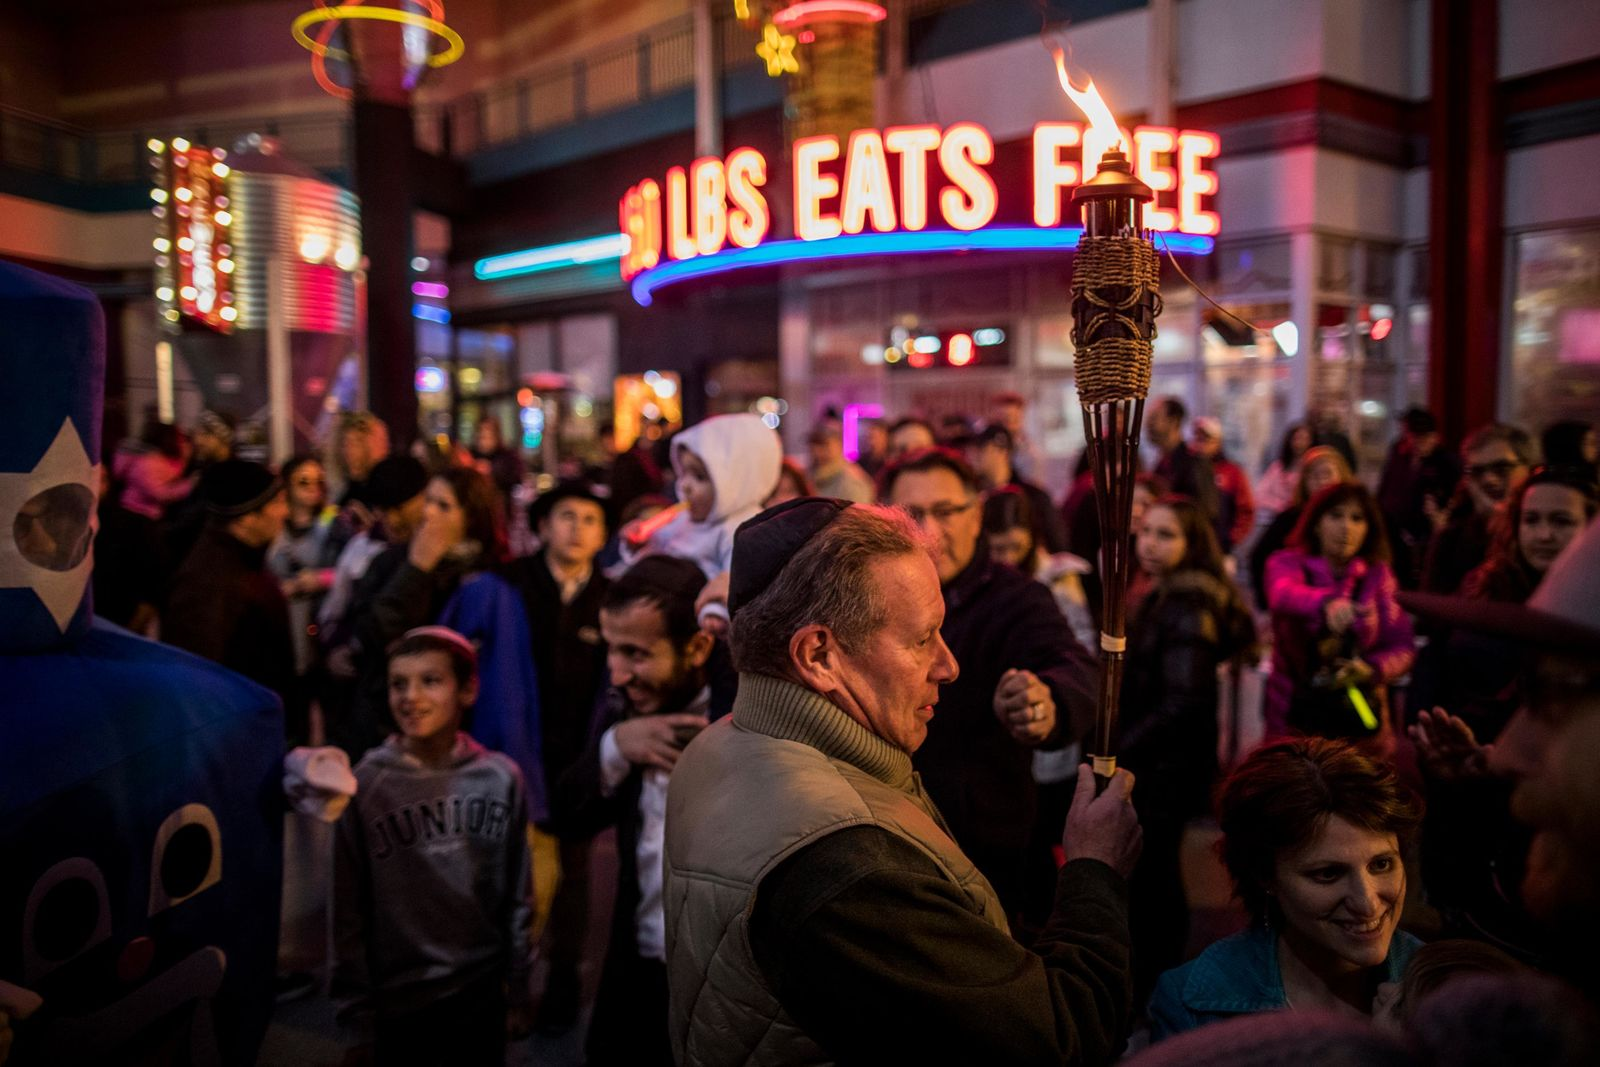 The torch is walked through the crowds before lighting Grand Menorah in downtown Las Vegas on Sunday, Dec. 2. The Grand Menorah will remain on display throughout the Hanukkah season. CREDIT: Joe Buglewicz/Las Vegas News Bureau